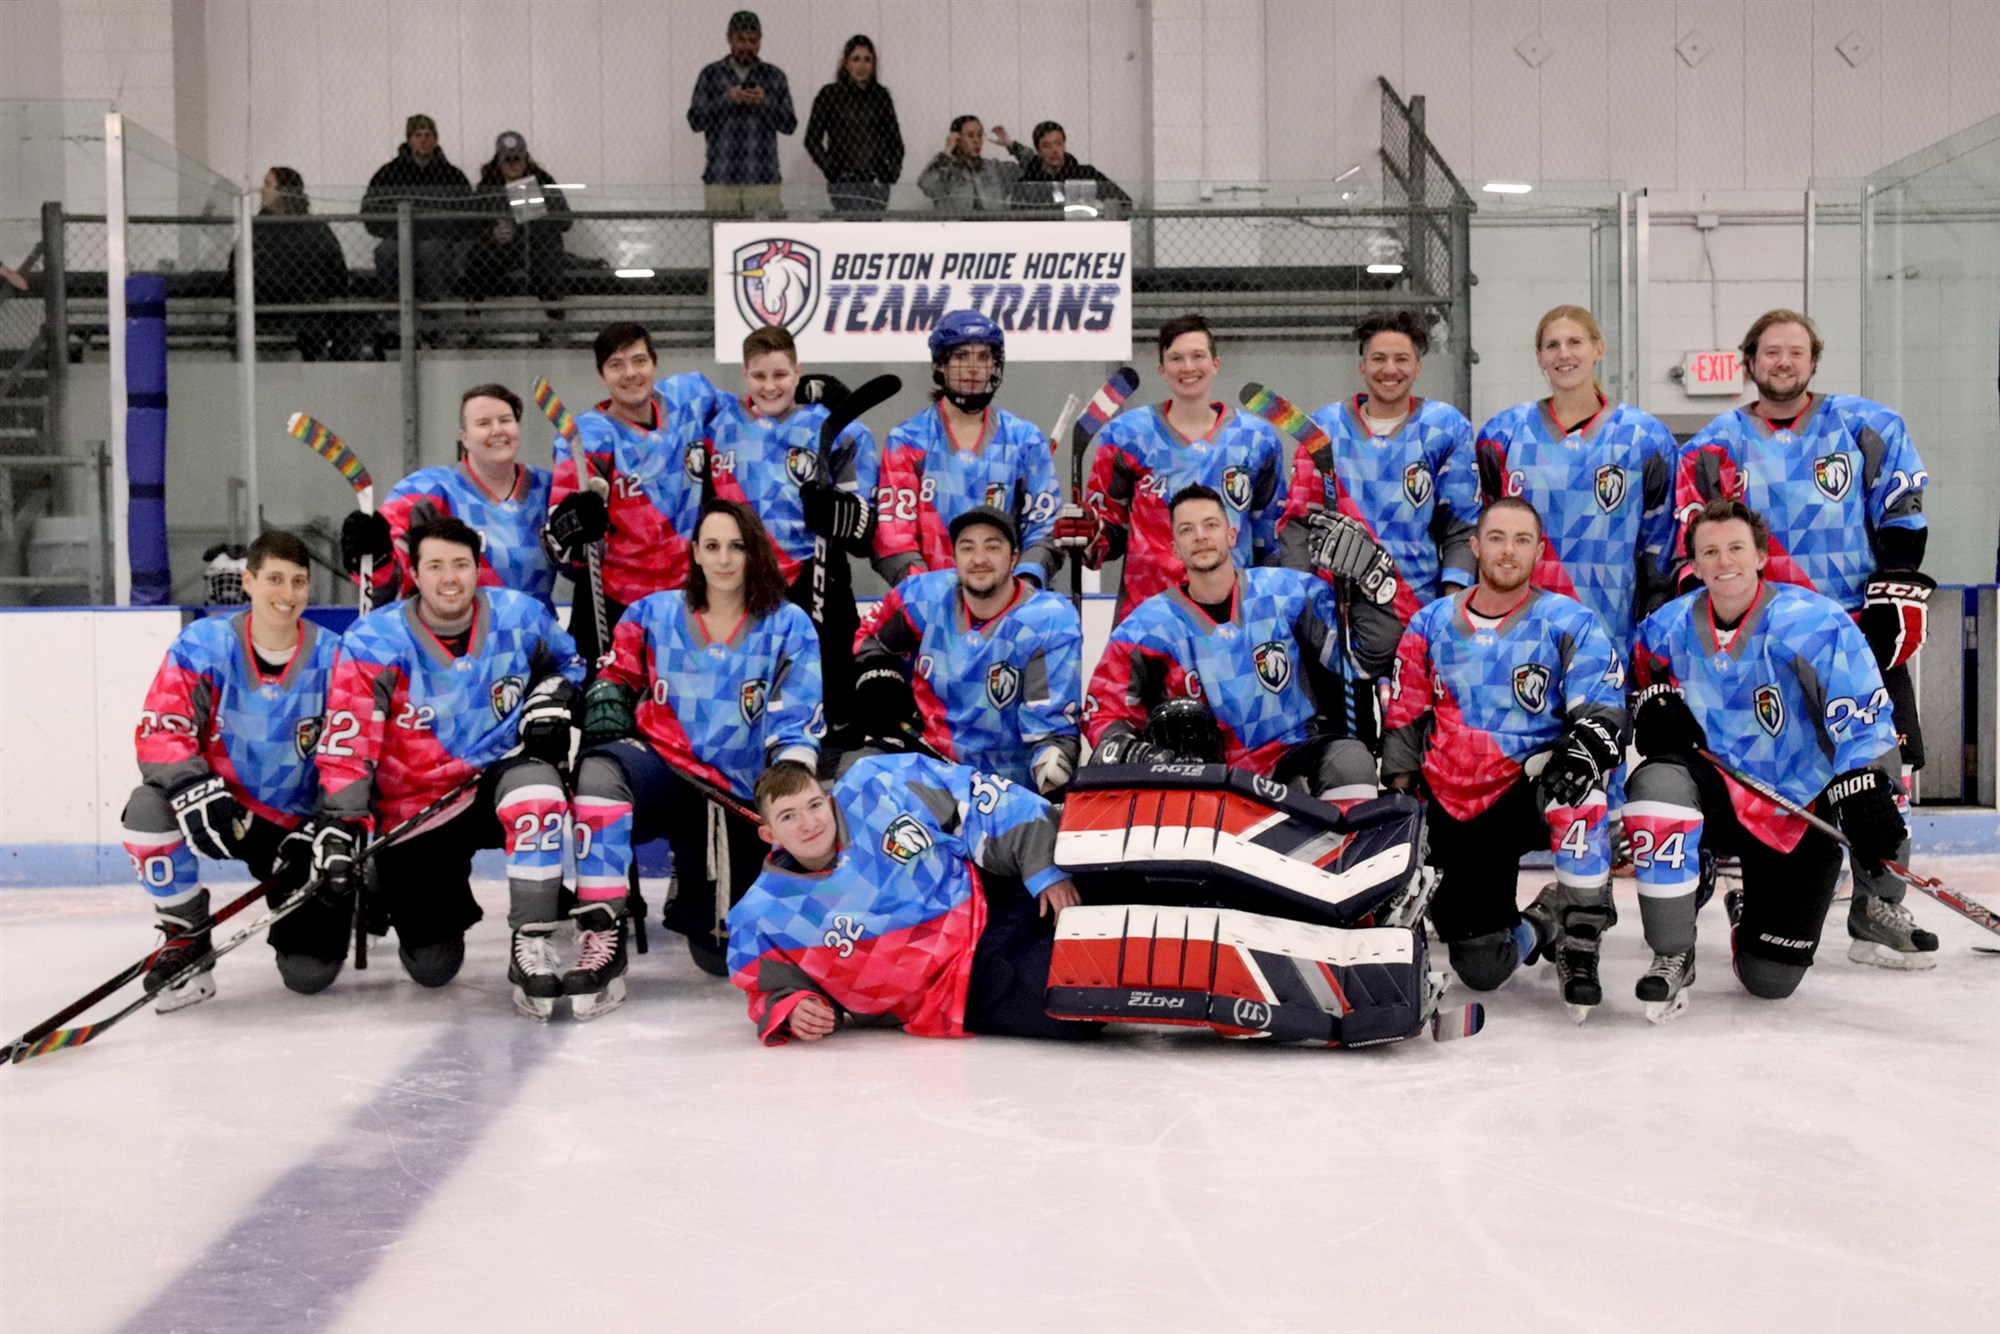 Boston Hosts First Transgender Hockey Team